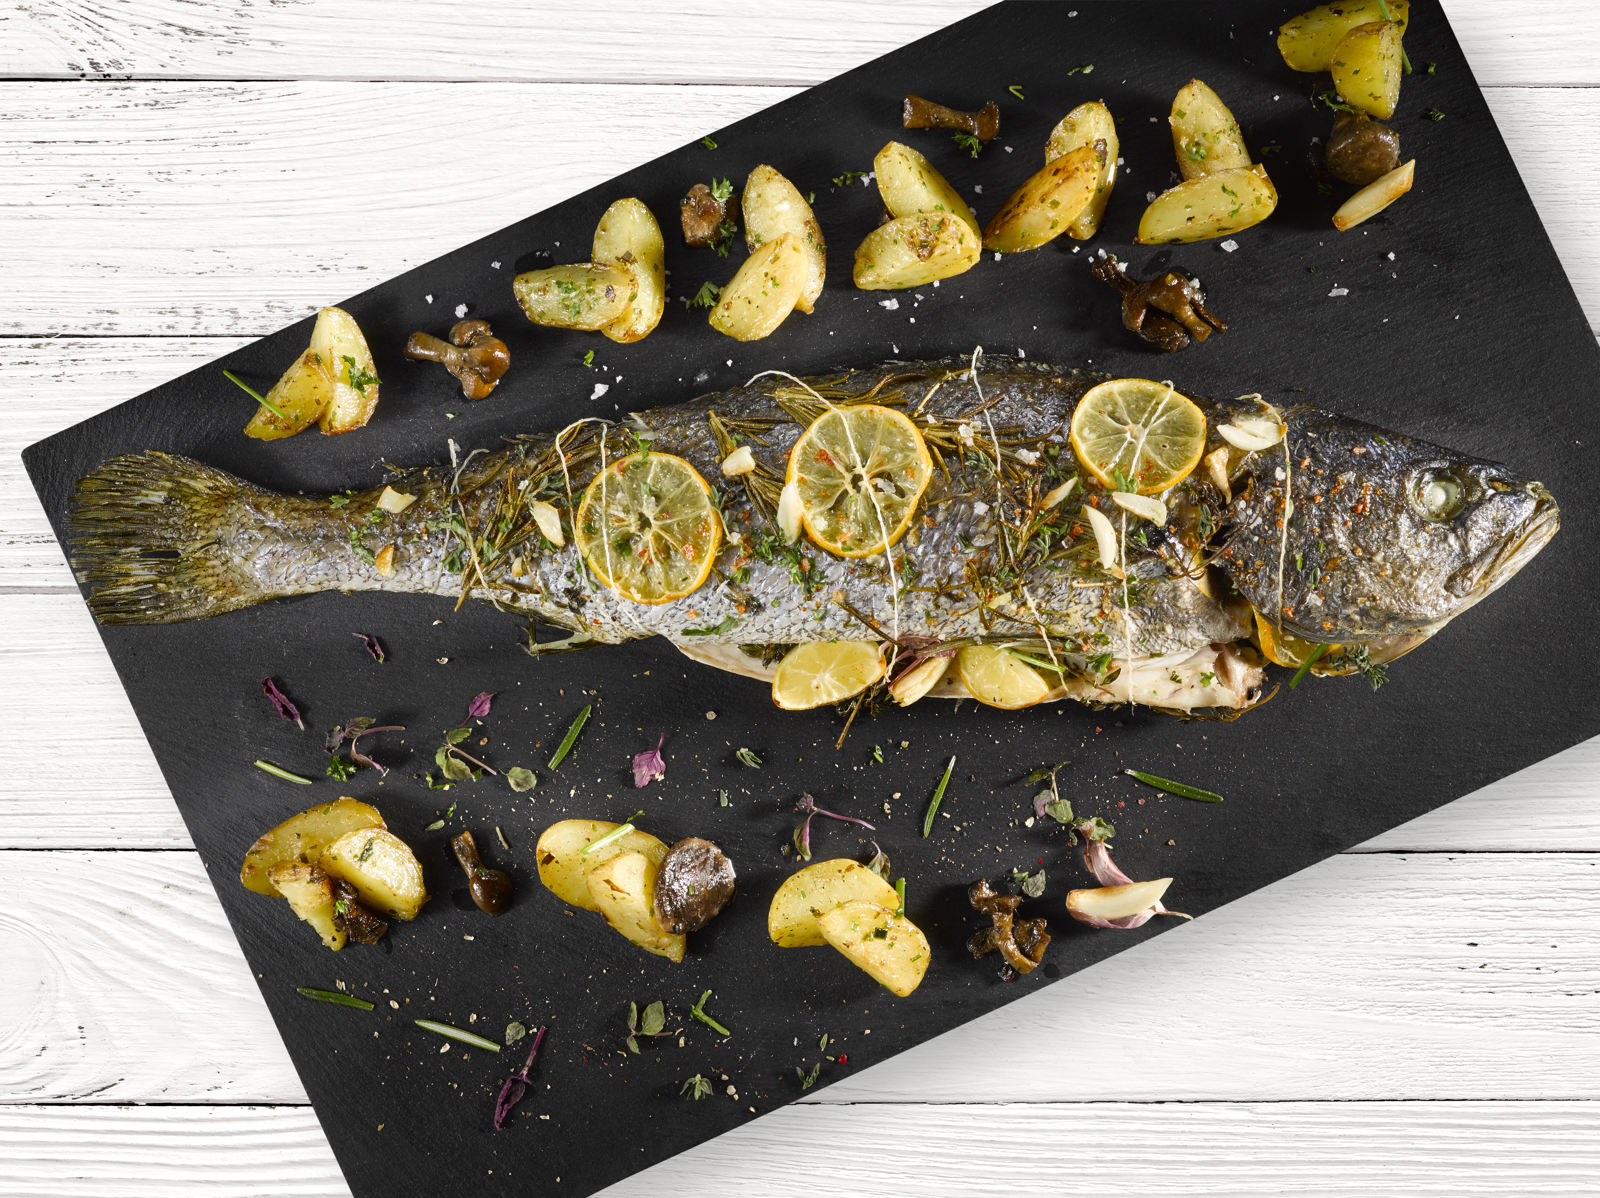 BAKED AVRAMAR CORVINA WITH LEMON AND POTATOES